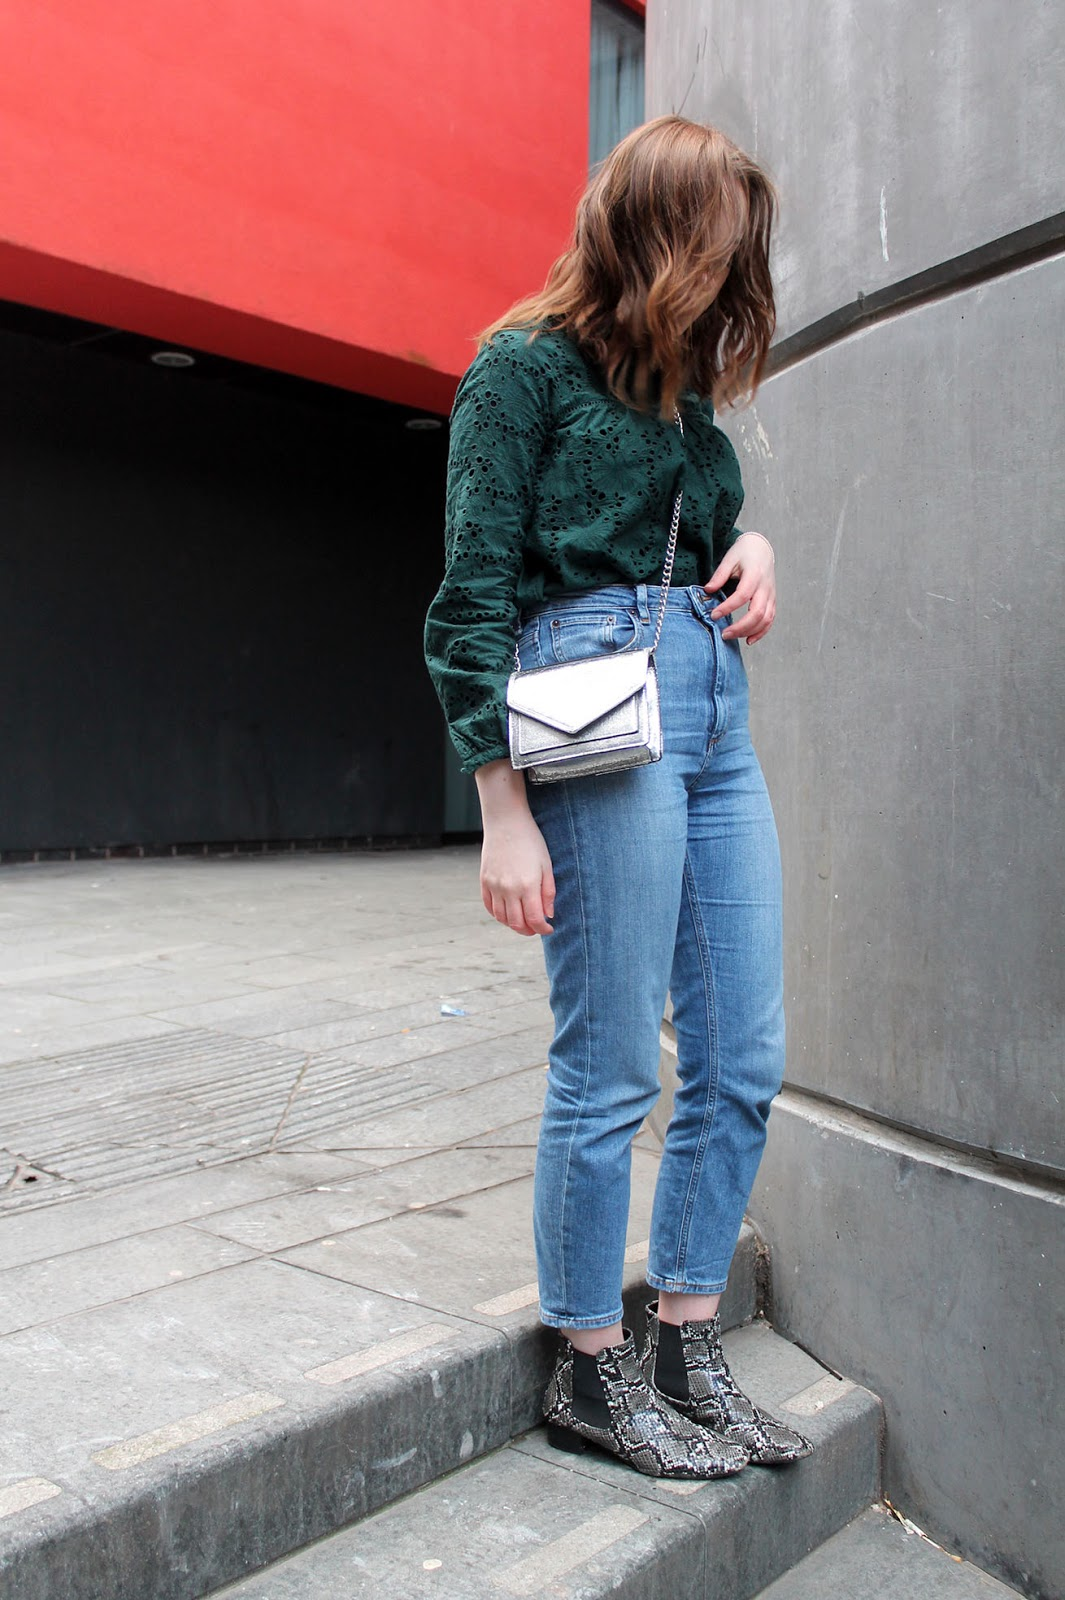 Zara bottle green borderie anglaise top, asos farleigh jeans in blue, snake print boots and silver metallic bag, Liverpool fashion blogger